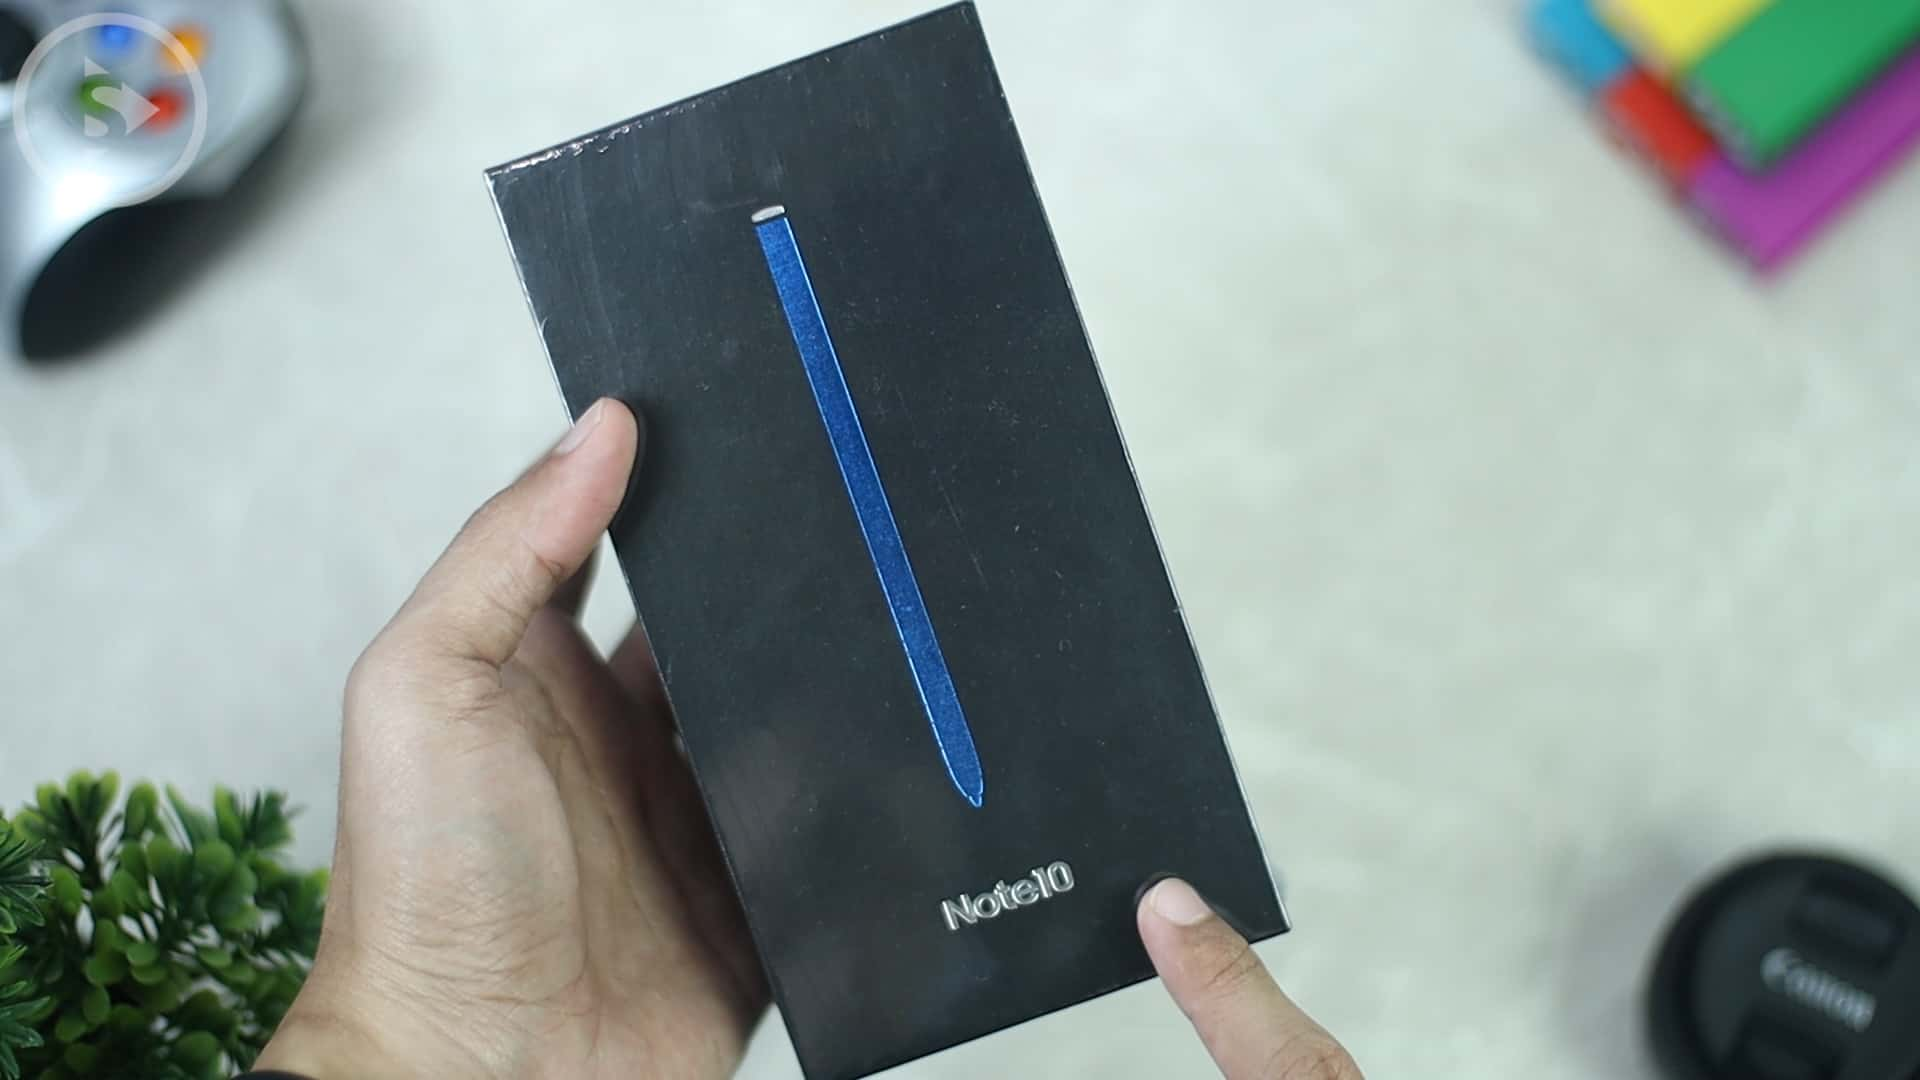 Kotak Note10 - Unboxing HP Samsung Warna Indah di Tahun 2020 - Samsung Galaxy Note10 Indonesia Warna Aura Glow